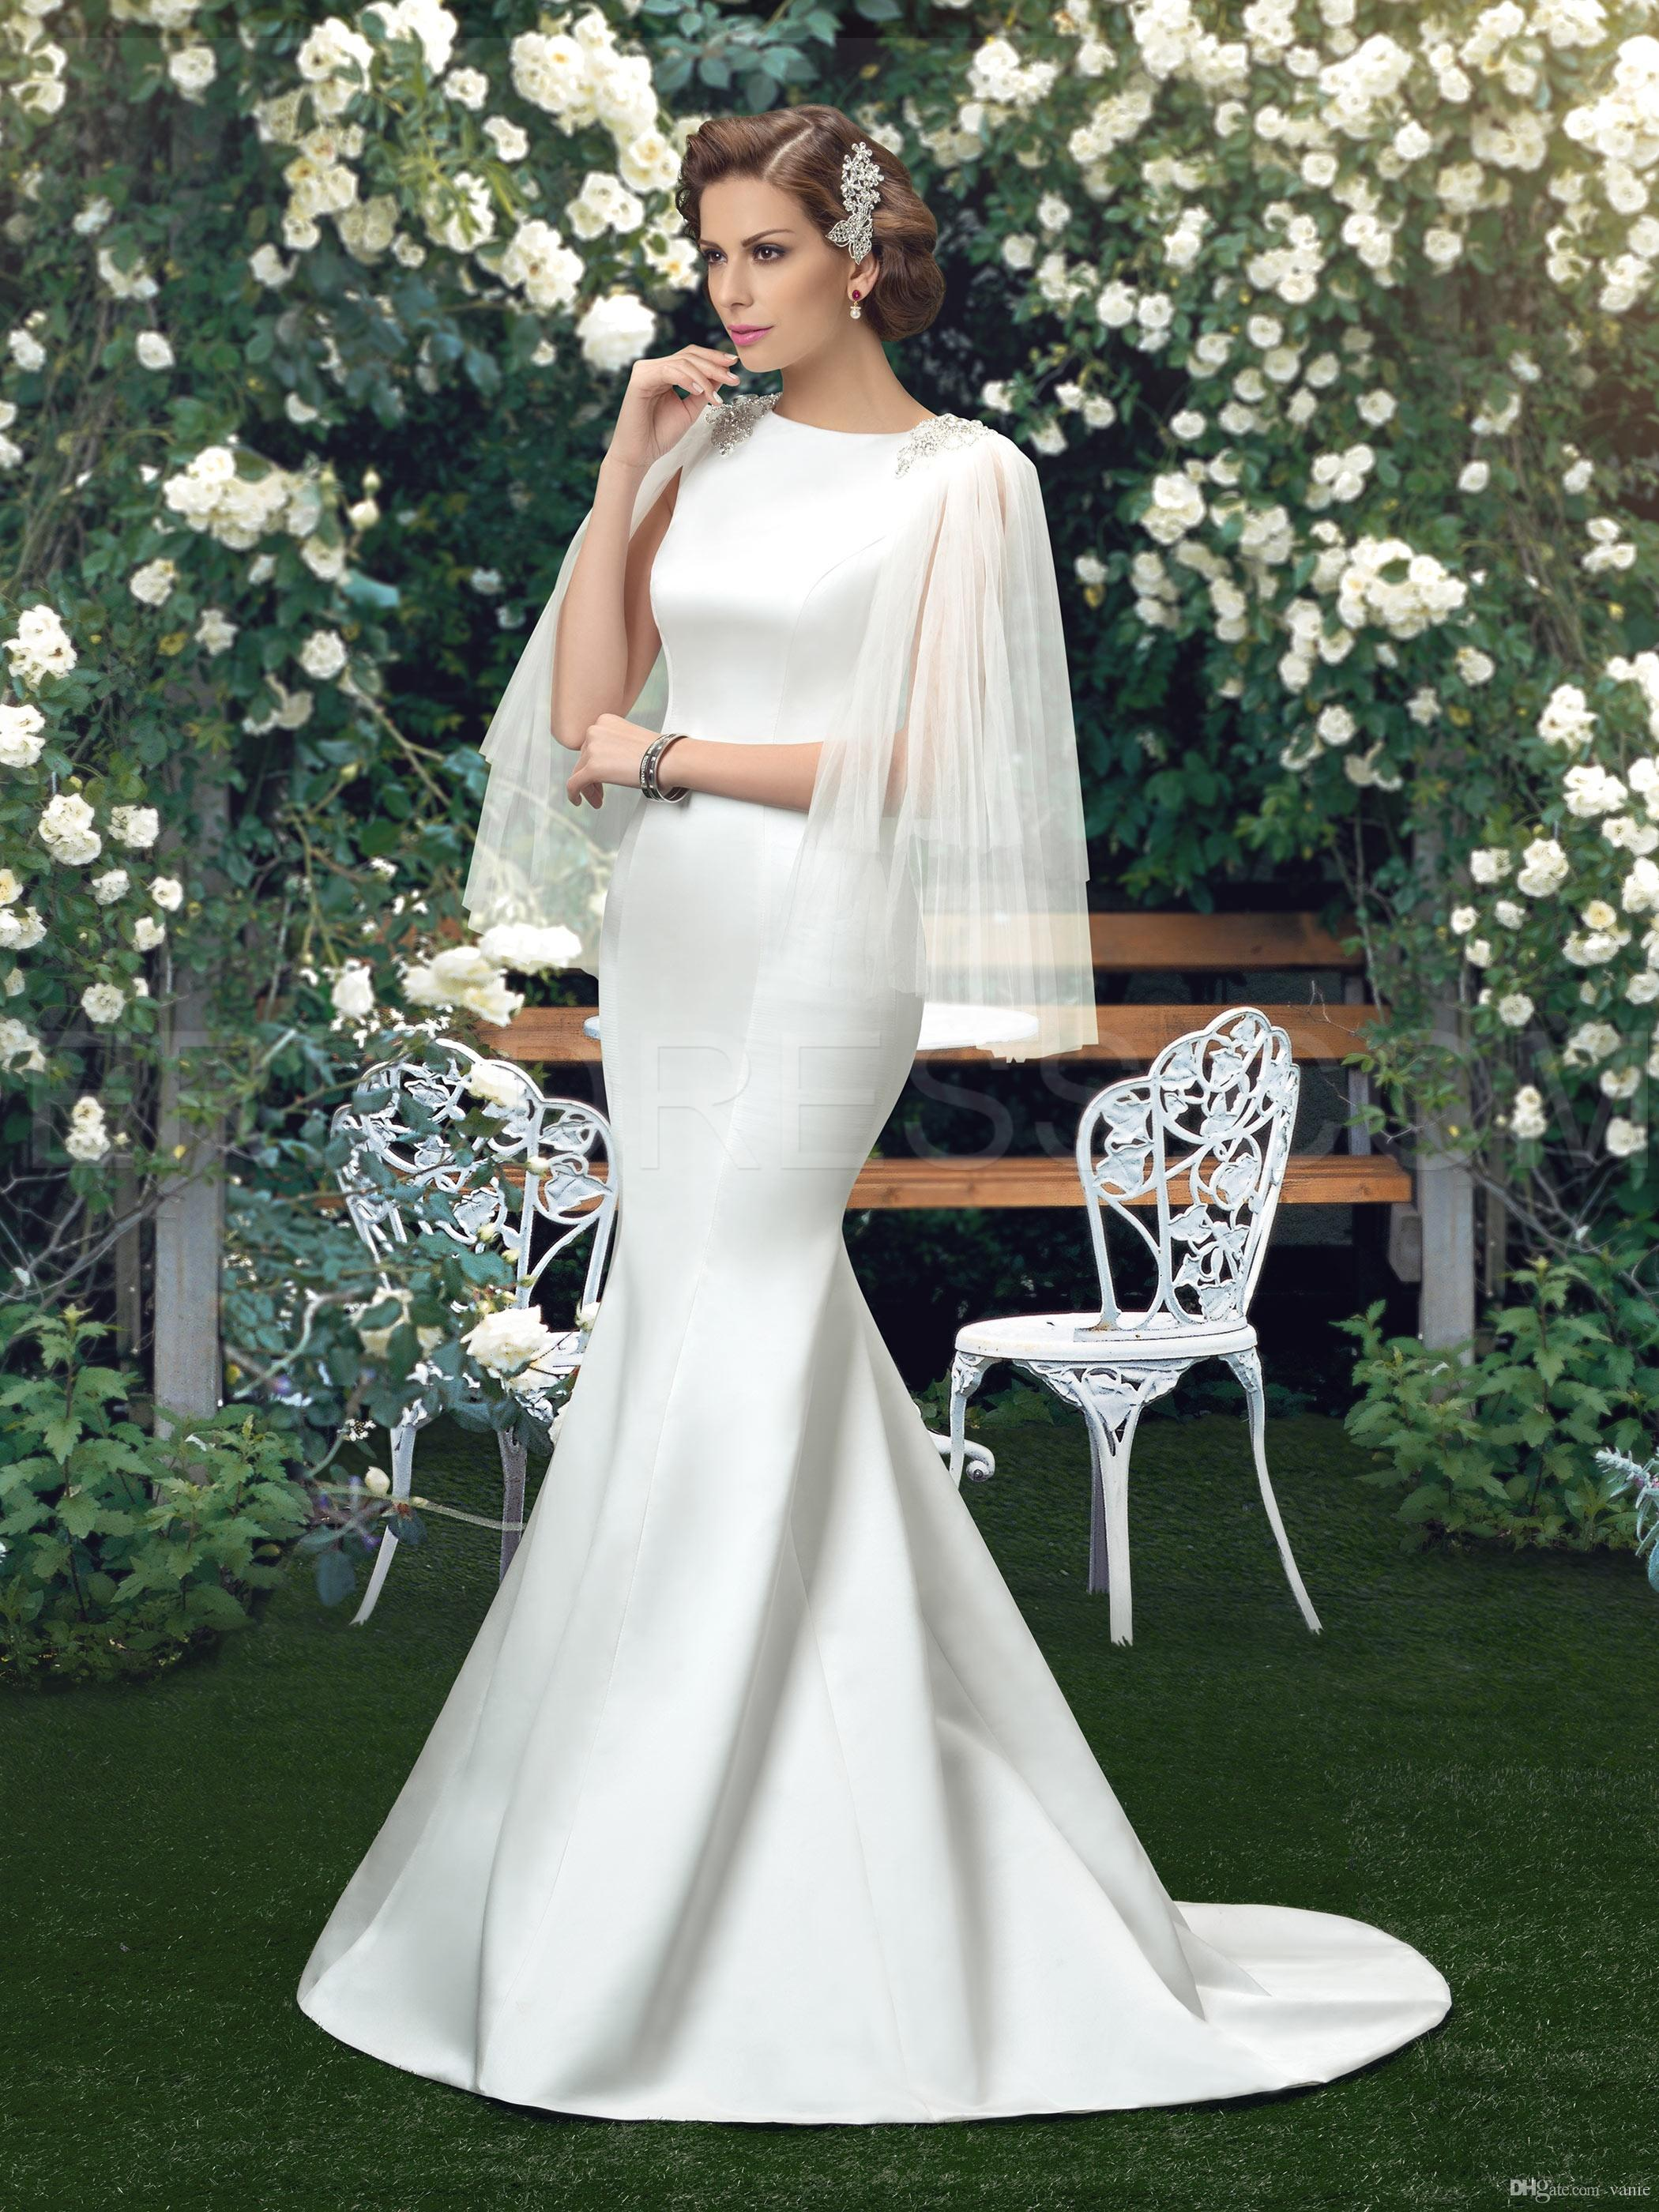 Nwd135 2018 Fashionable Of Bride Simple Satin Shoulder Ribbon ...